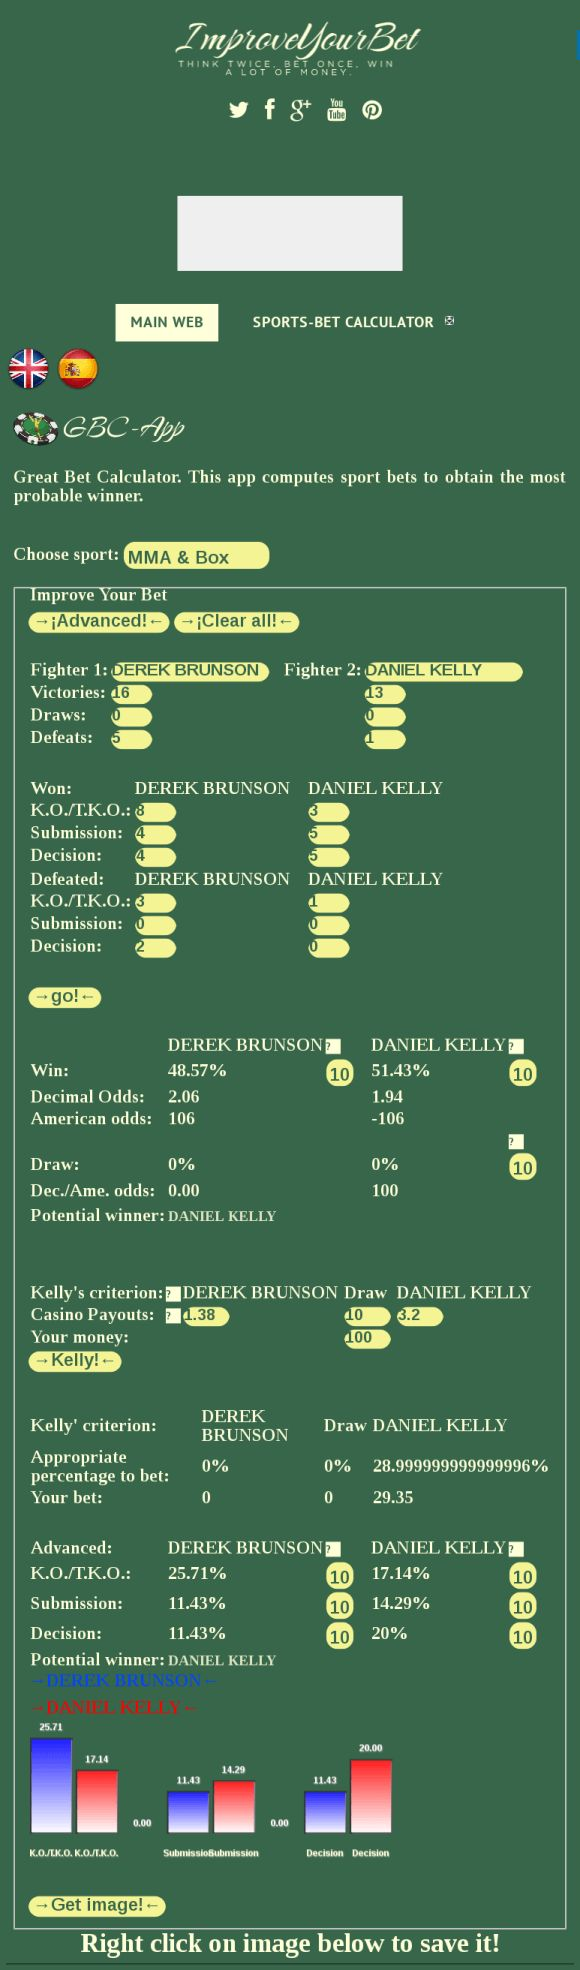 UFC fight night 110 forecast predictions and picks DEREK BRUNSON Vs DANIEL KELLY